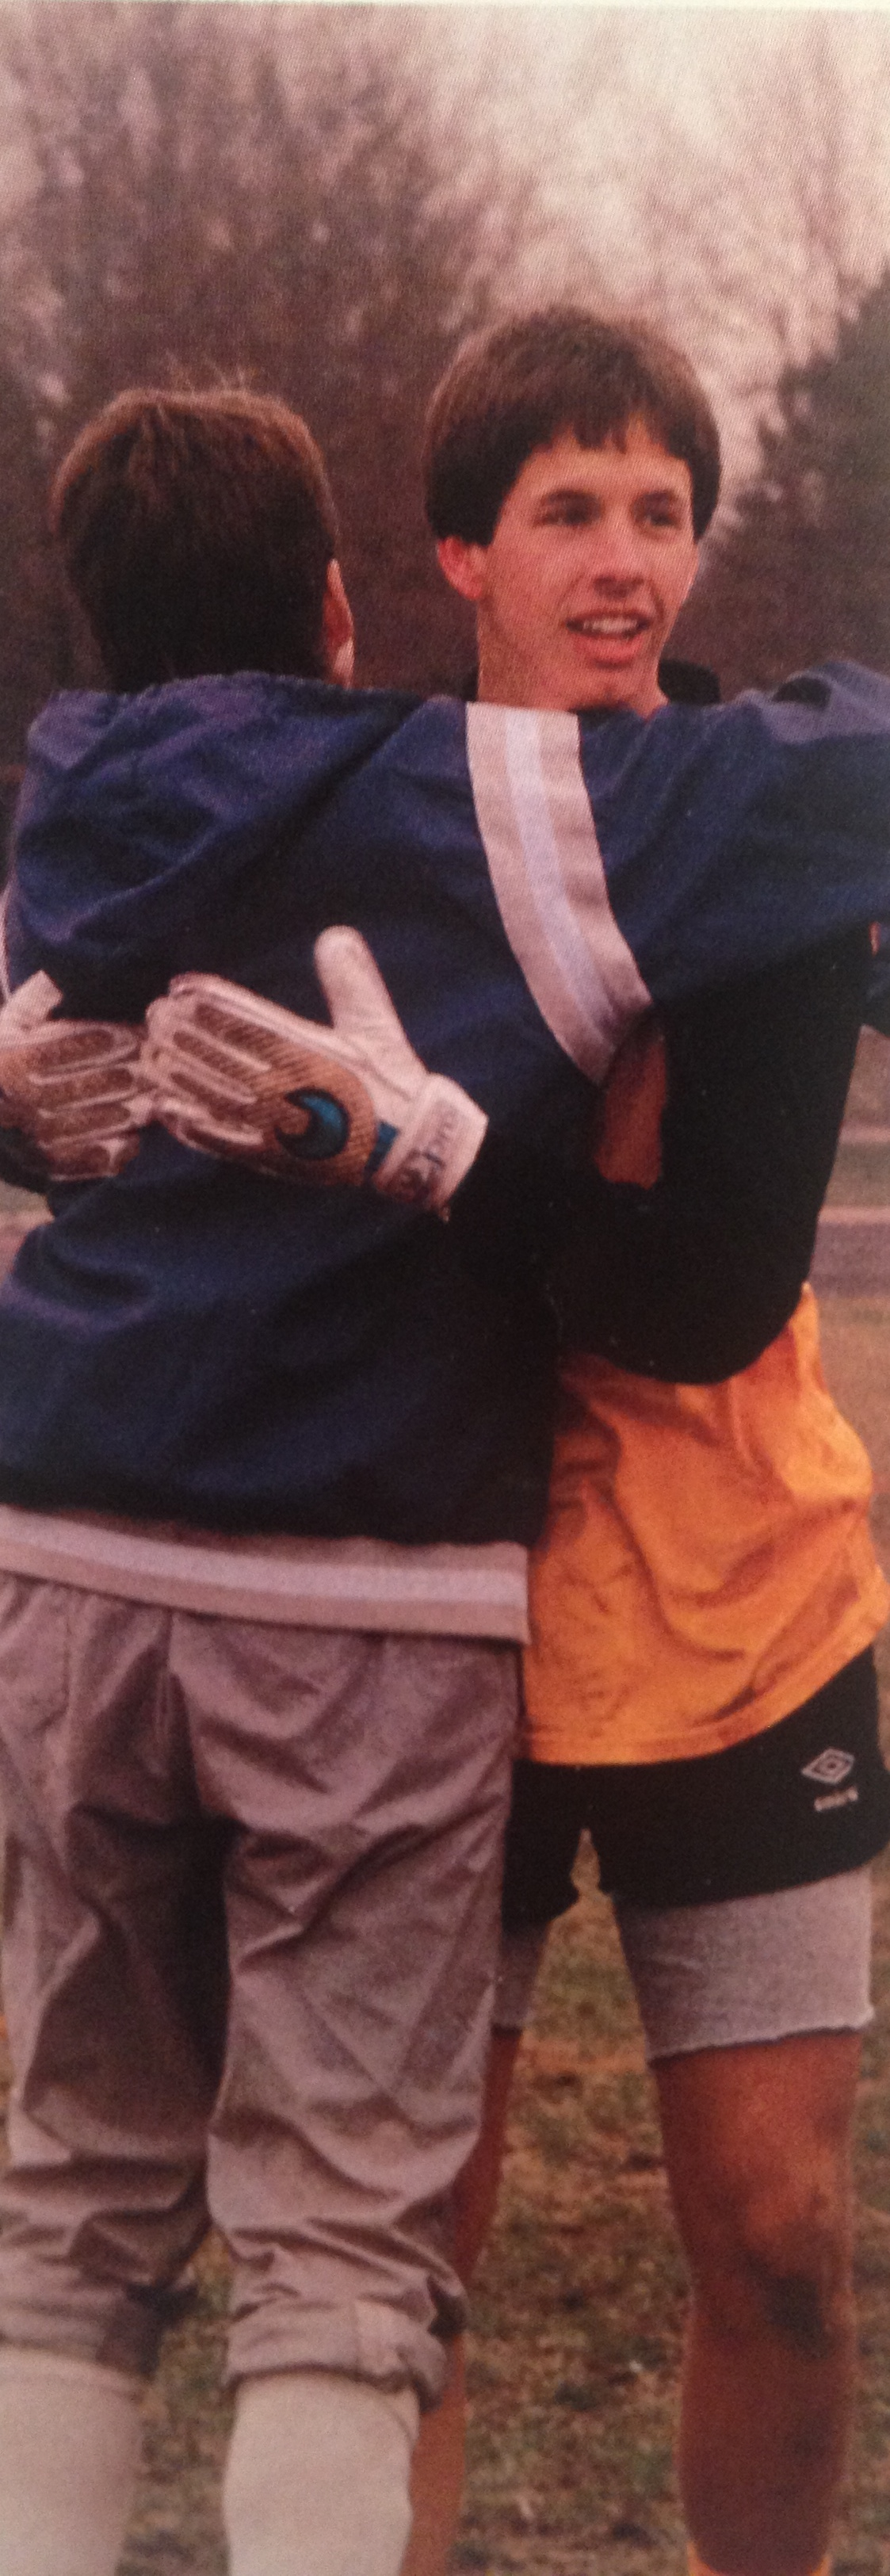 Brian Mirgon and Steve Scialabba embrace after the victory